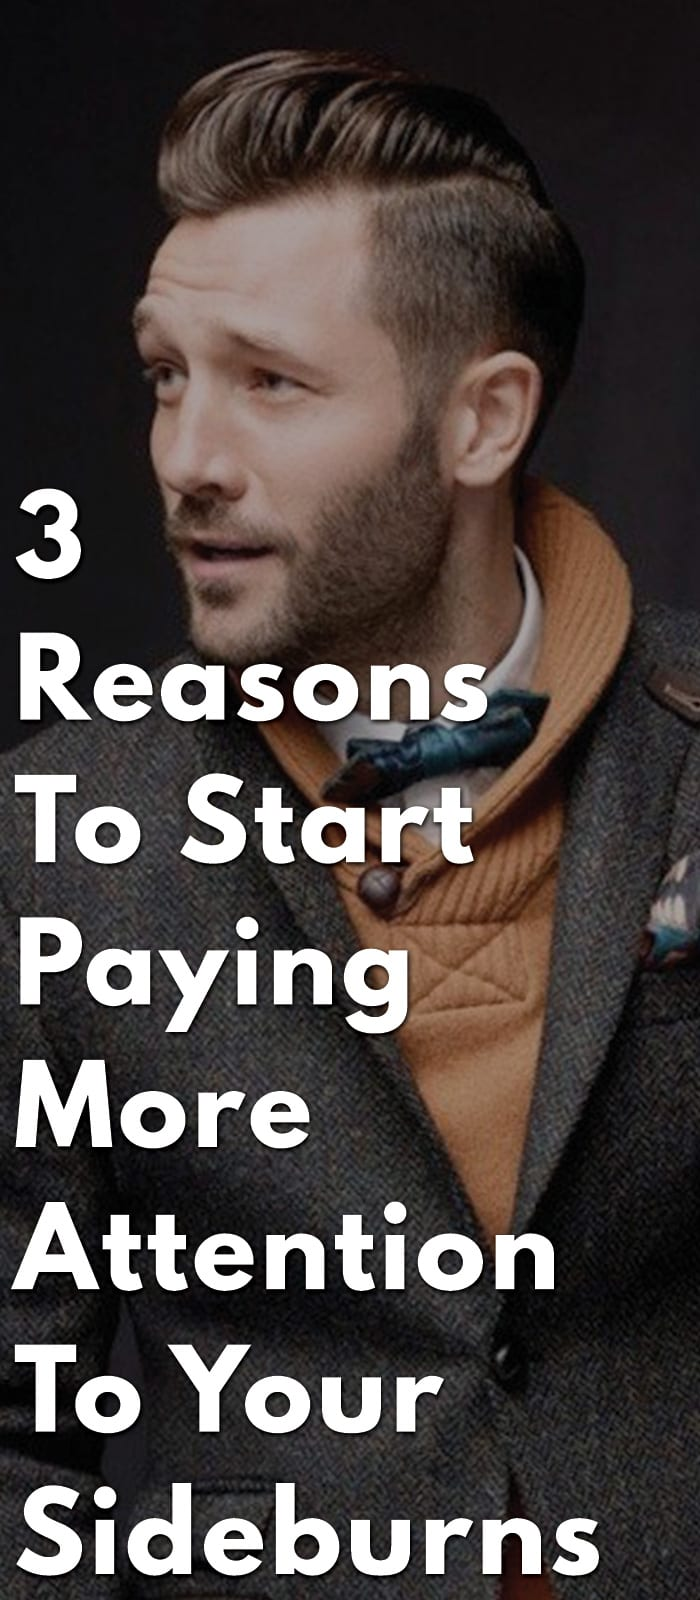 3-Reasons-To-Start-Paying-More-Attention-To-Your-Sideburns